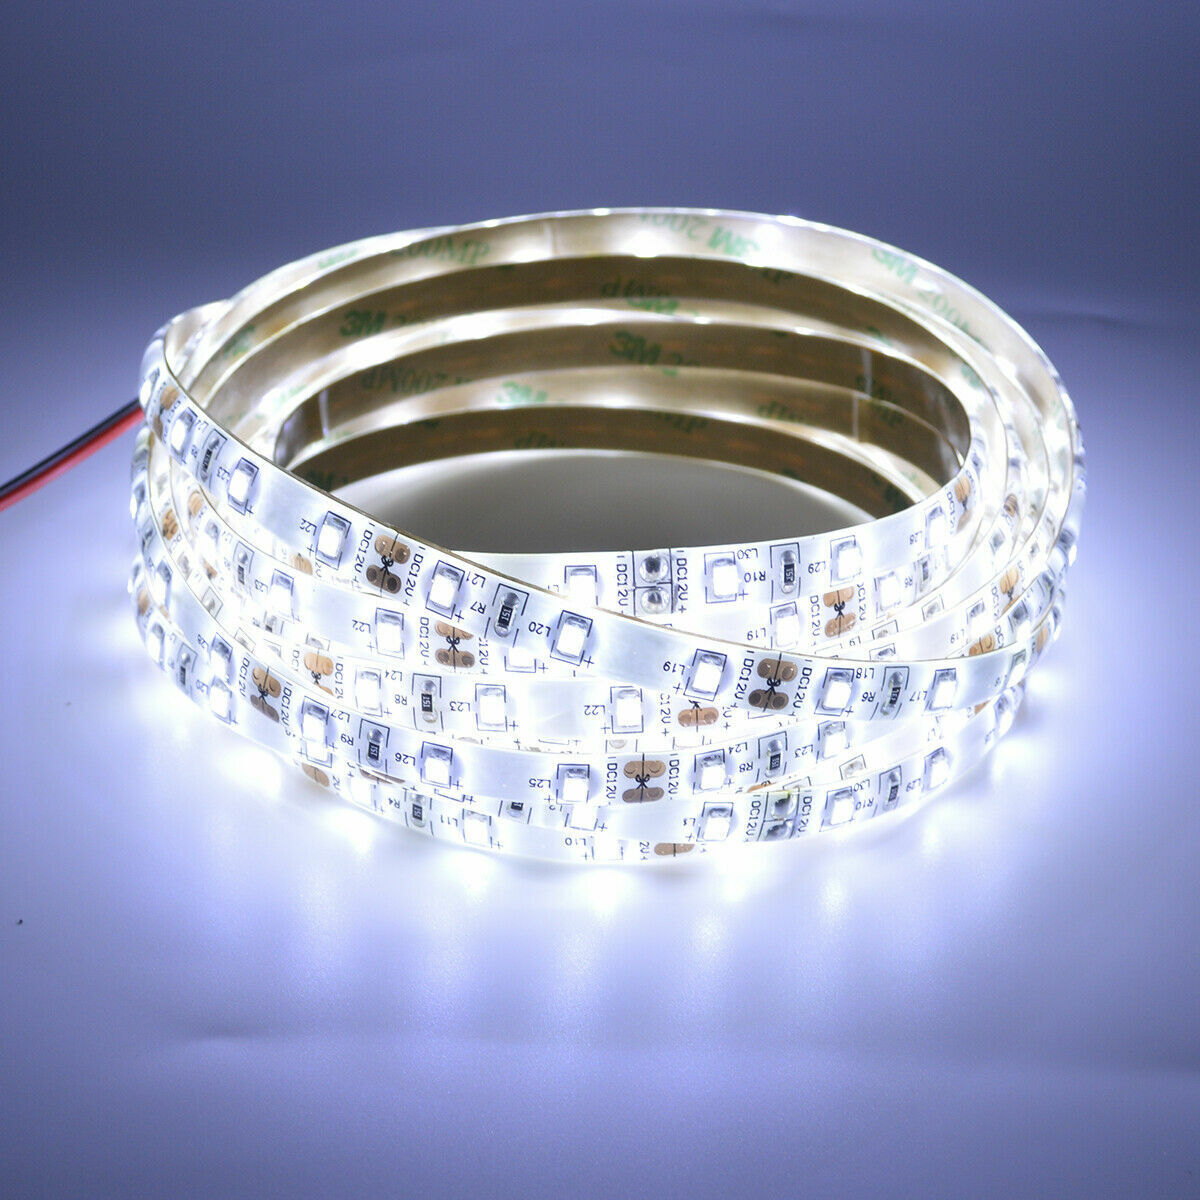 12V 16.4FT COOL WHITE LED 3528 SMD FLEXIBLE WIRE STRIP LIGHT ROPE WATERPROOF US Home & Garden